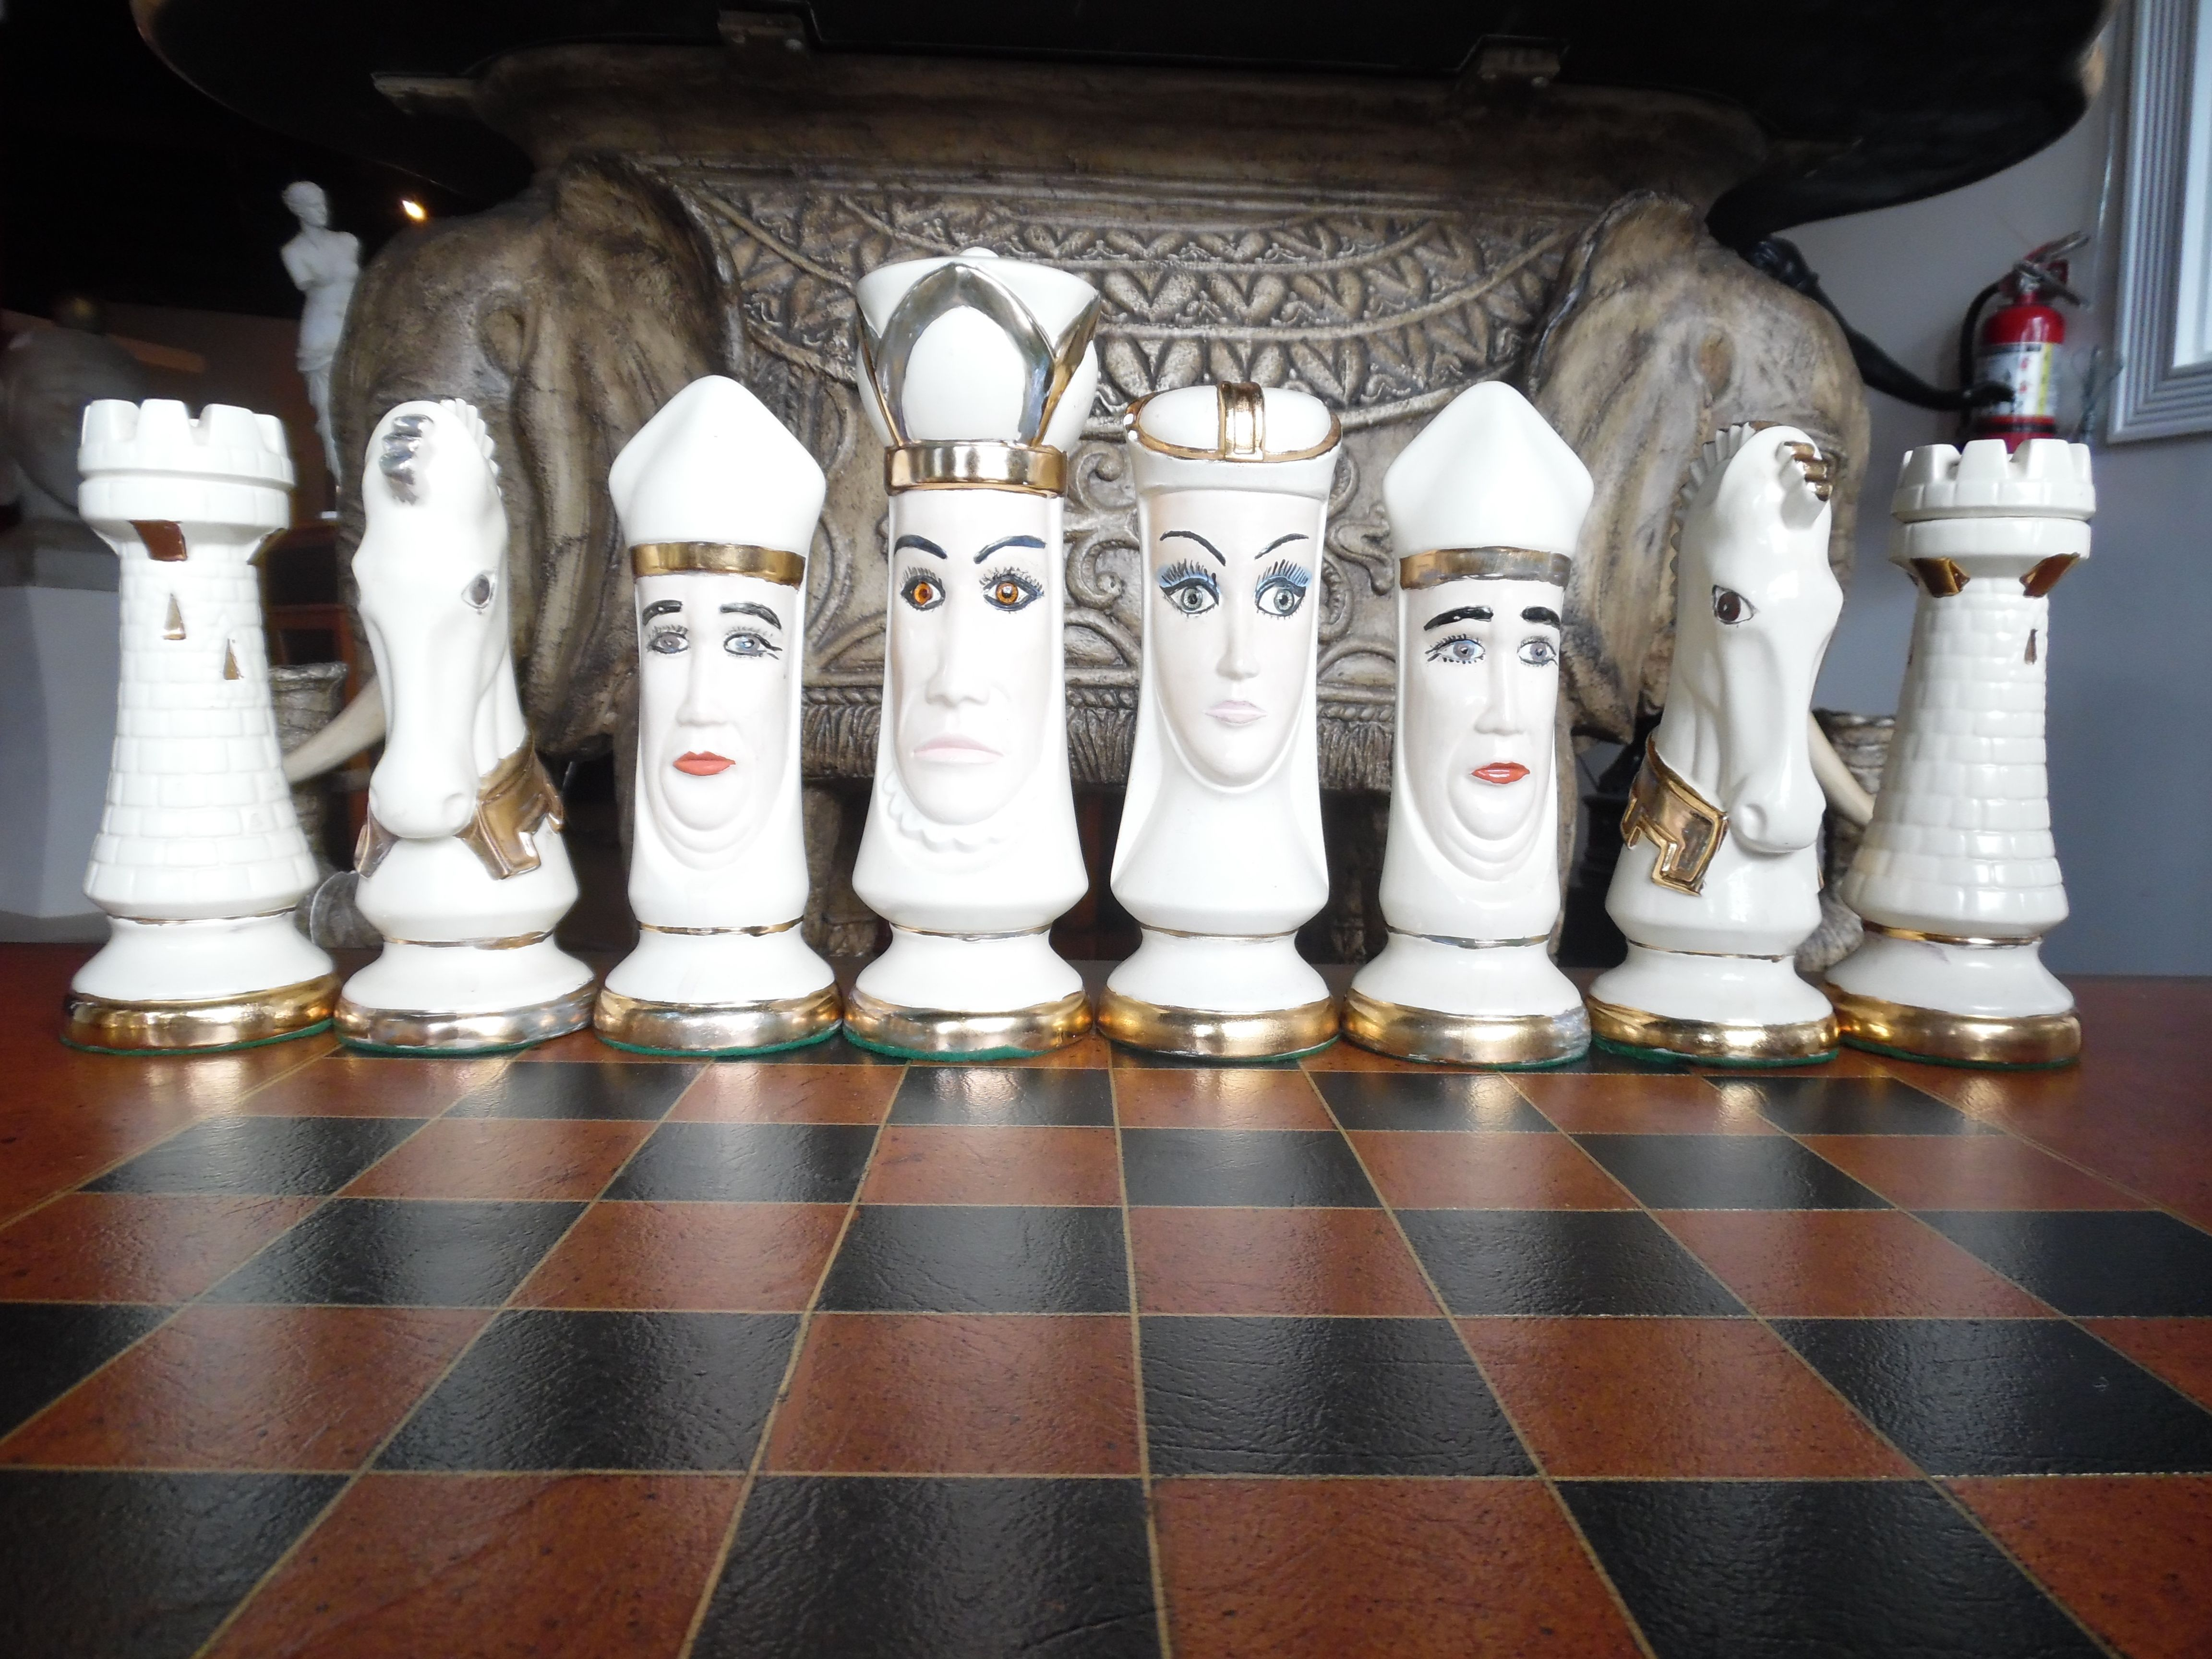 White Chess Board Pieces, Duncan Medieval Hand Painted Porcelain (32 Piece  Set) $495 @ Grapes Furniture Gallery